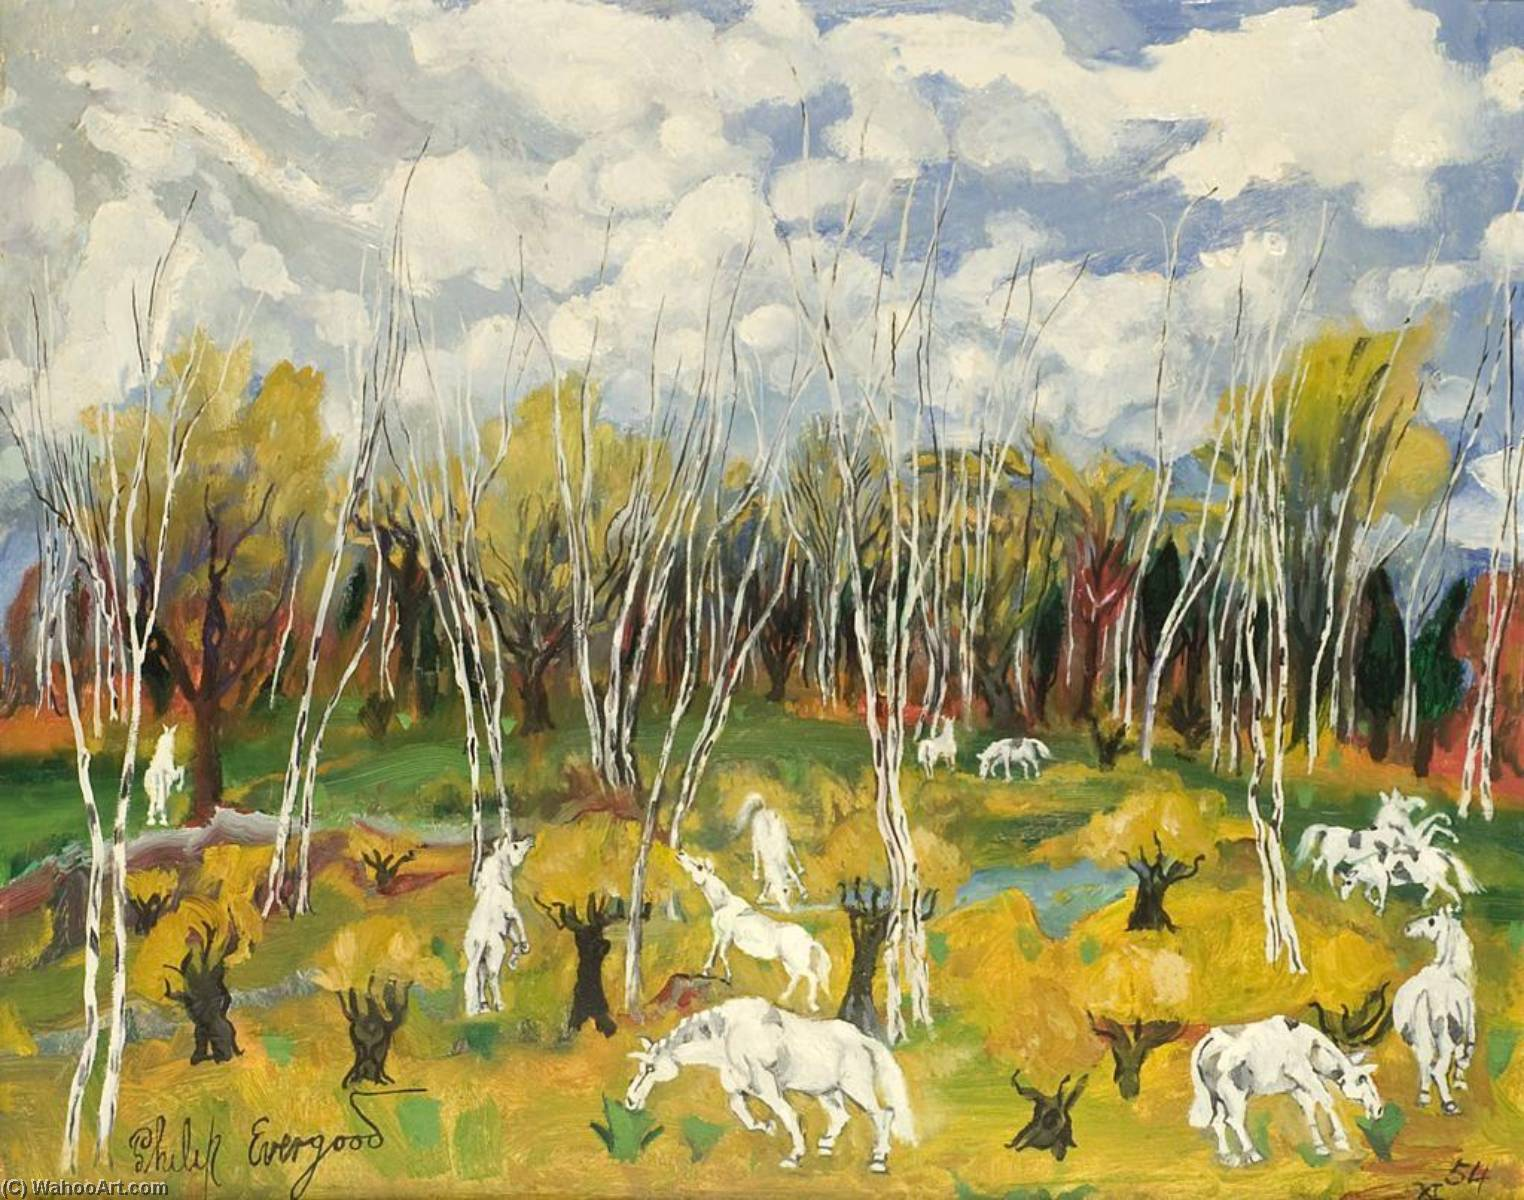 Birch Tree and White Horses, 1954 by Philip Evergood (1901-1973) | Famous Paintings Reproductions | WahooArt.com